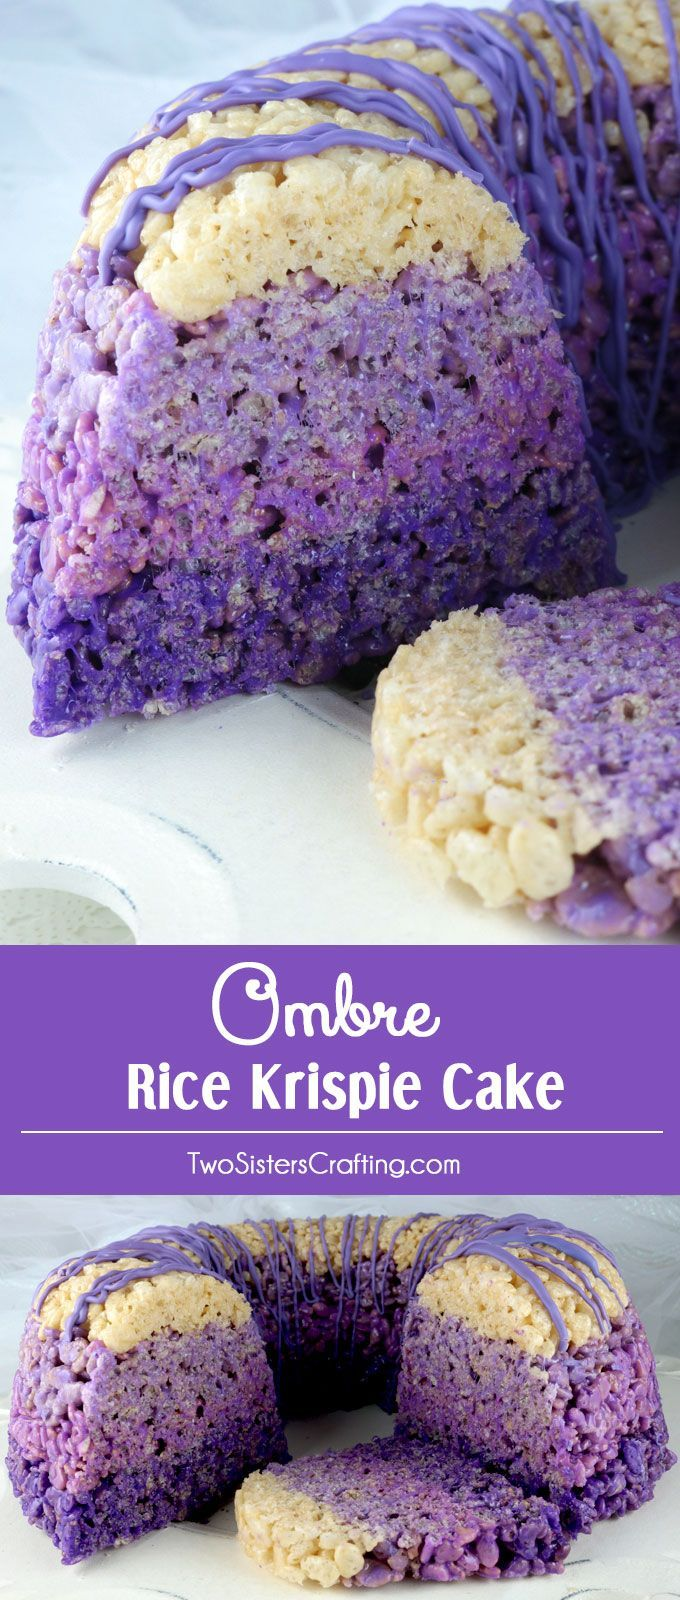 Ombre Rice Krispie Cake - gorgeous, delicious and unique!  This lovely purple ombre dessert will be a hit with your family or your party guests because who doesn't love Rice Krispie Treats? So yummy and so easy to make you'll want to make this yummy cake again and again. Pin for later and follow us for more great Rice Krispie Treats recipes.